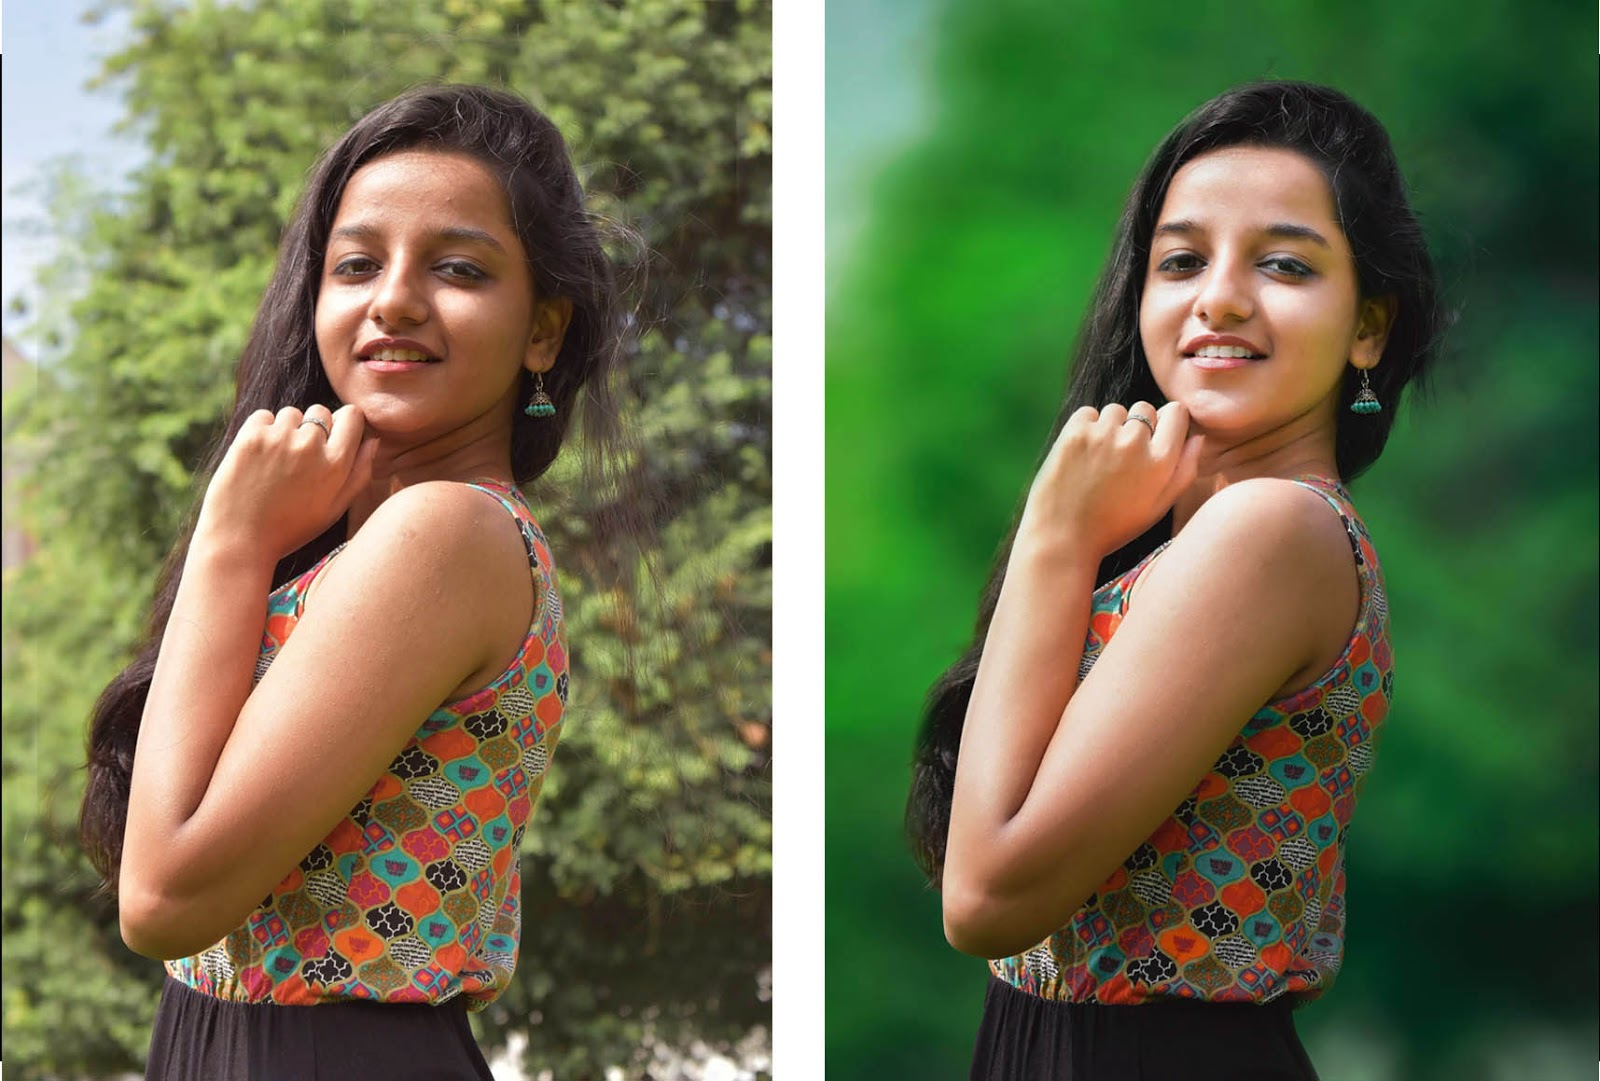 How To Blur Background Photoshop Outdoor Portrait And Retouching Tutorial Maxpoint Hridoy Graphic Design Tutorial Learn More Earn More